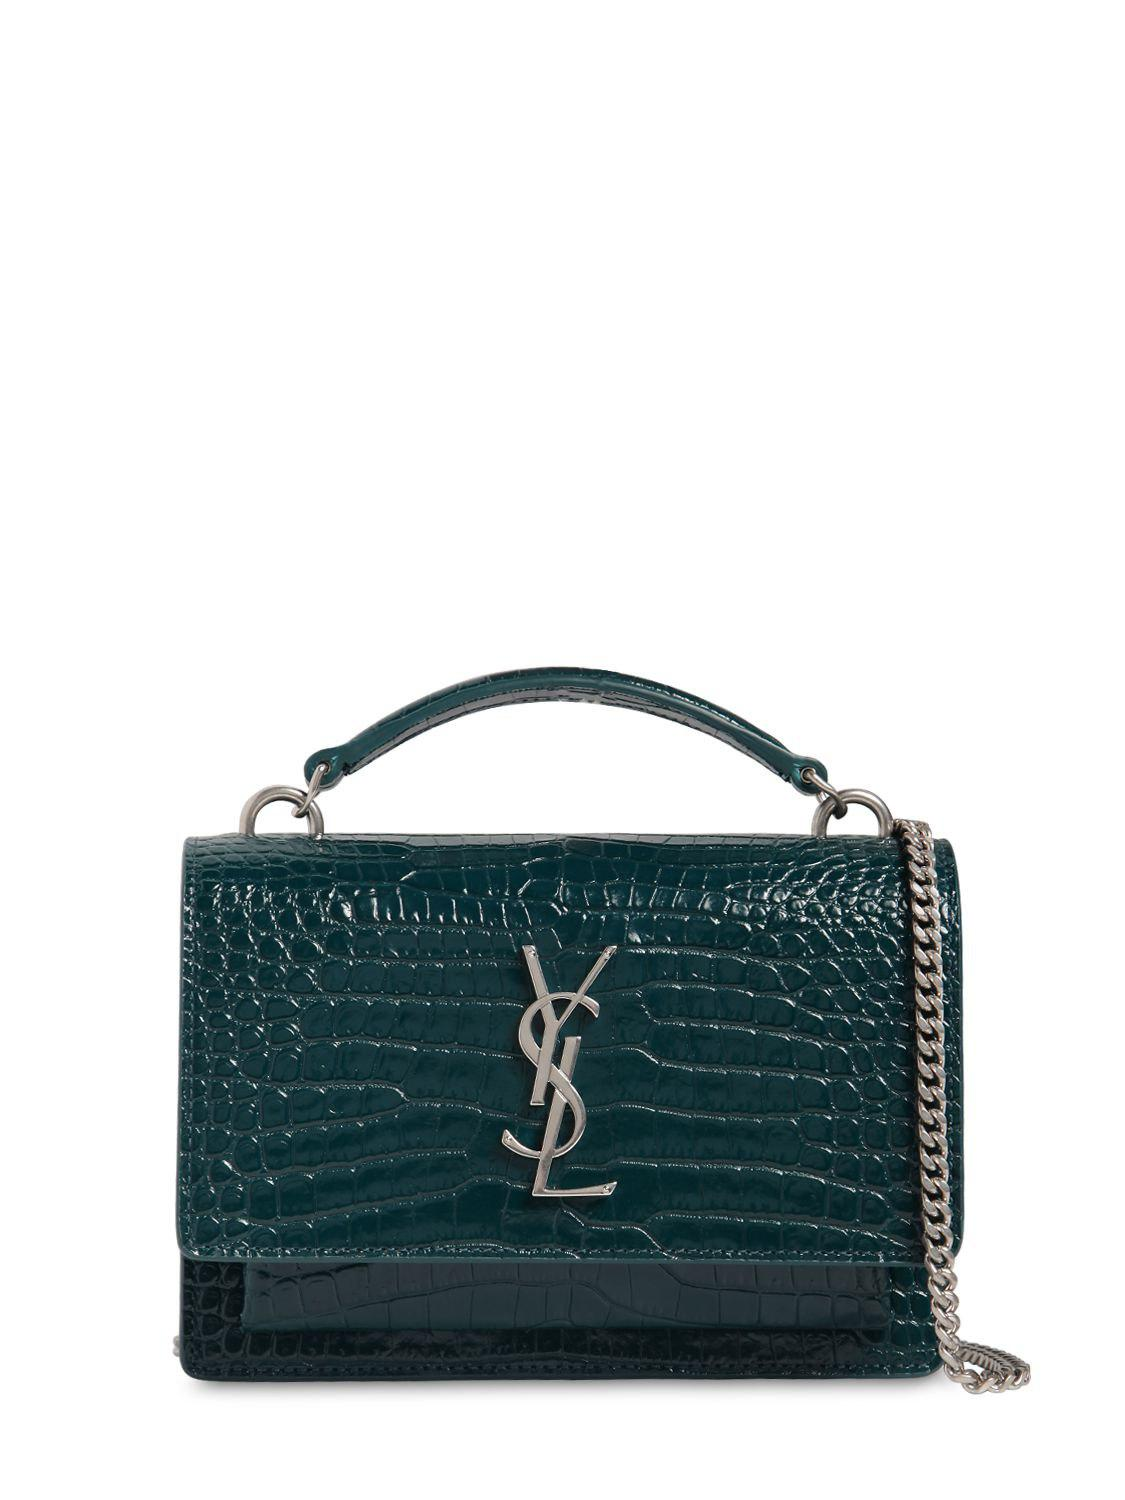 d76569b23a4 Saint Laurent Small Sunset Croc Embossed Leather Bag in Green - Lyst